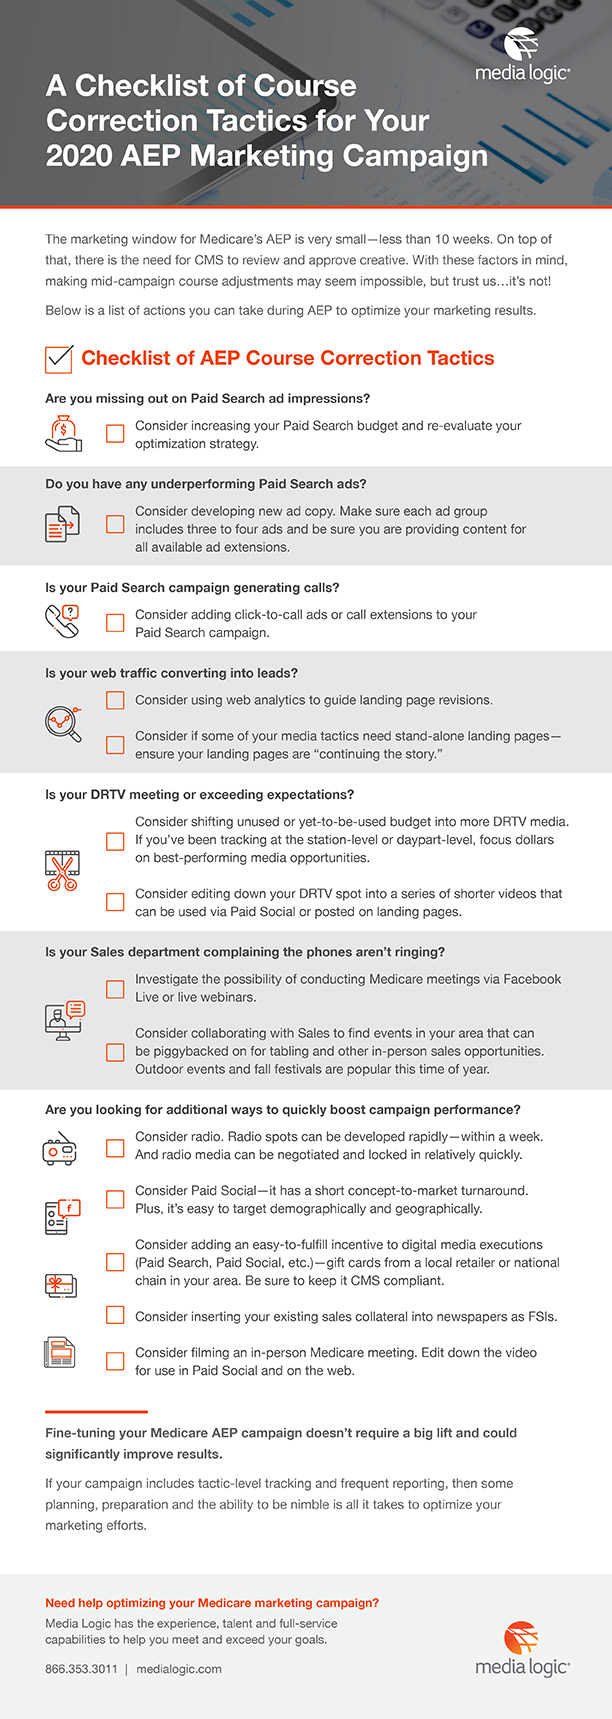 A Checklist of Course Correction Tactics for your 2020 AEP Marketing Campaign